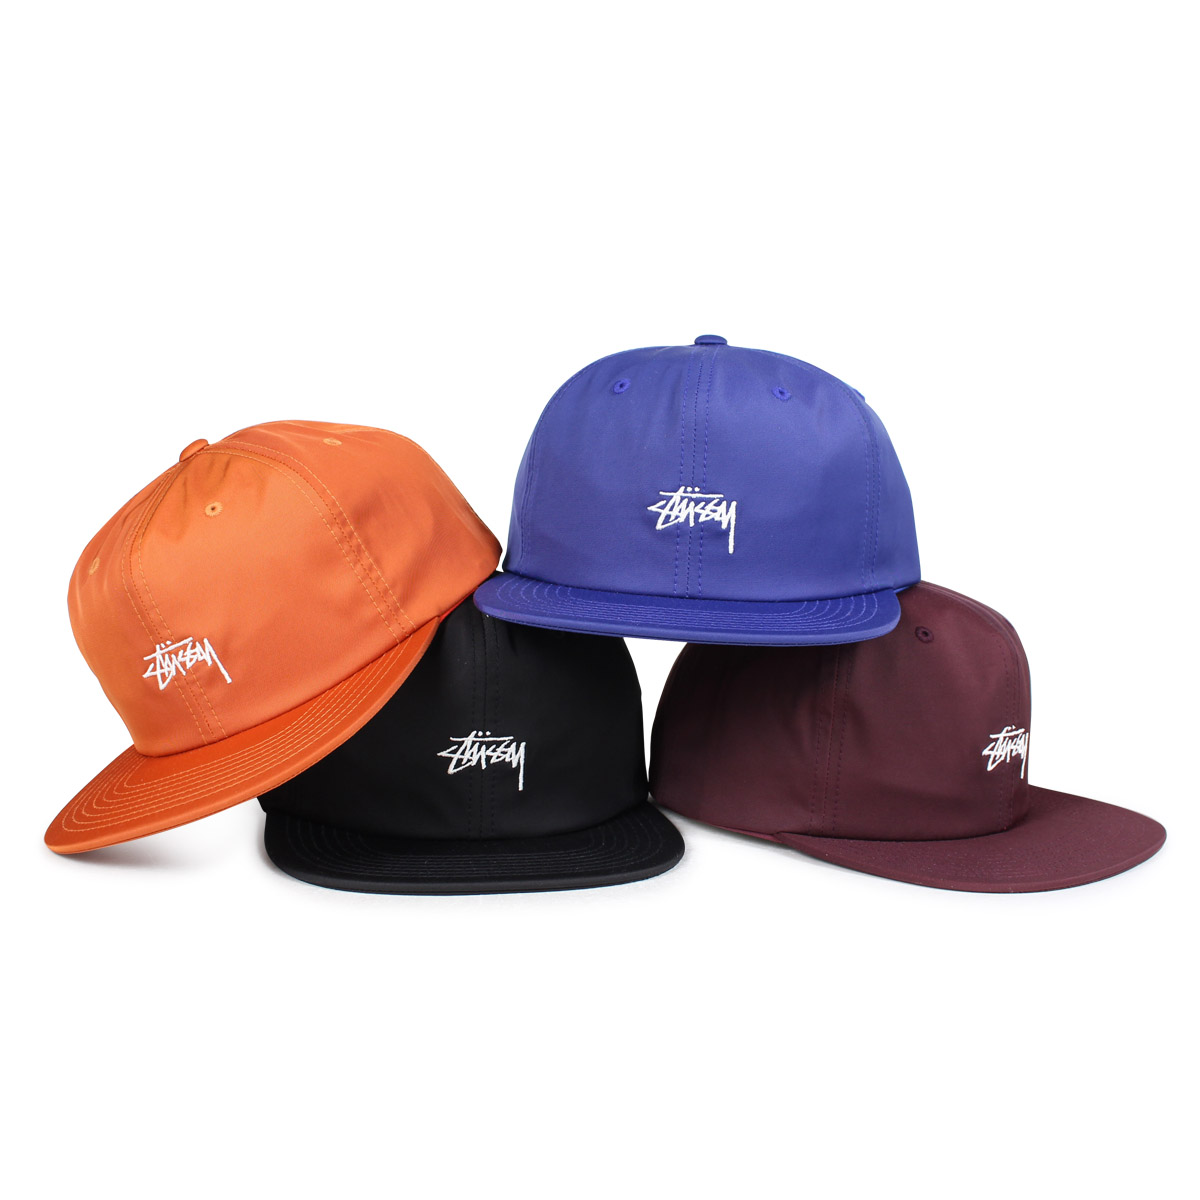 cd3d52321f9 STUSSY STOCK POLY COTTON SNAPBACK ステューシーキャップ hat men snapback 131806  load  planned Shinnyu load in reservation product 6 30 containing   186